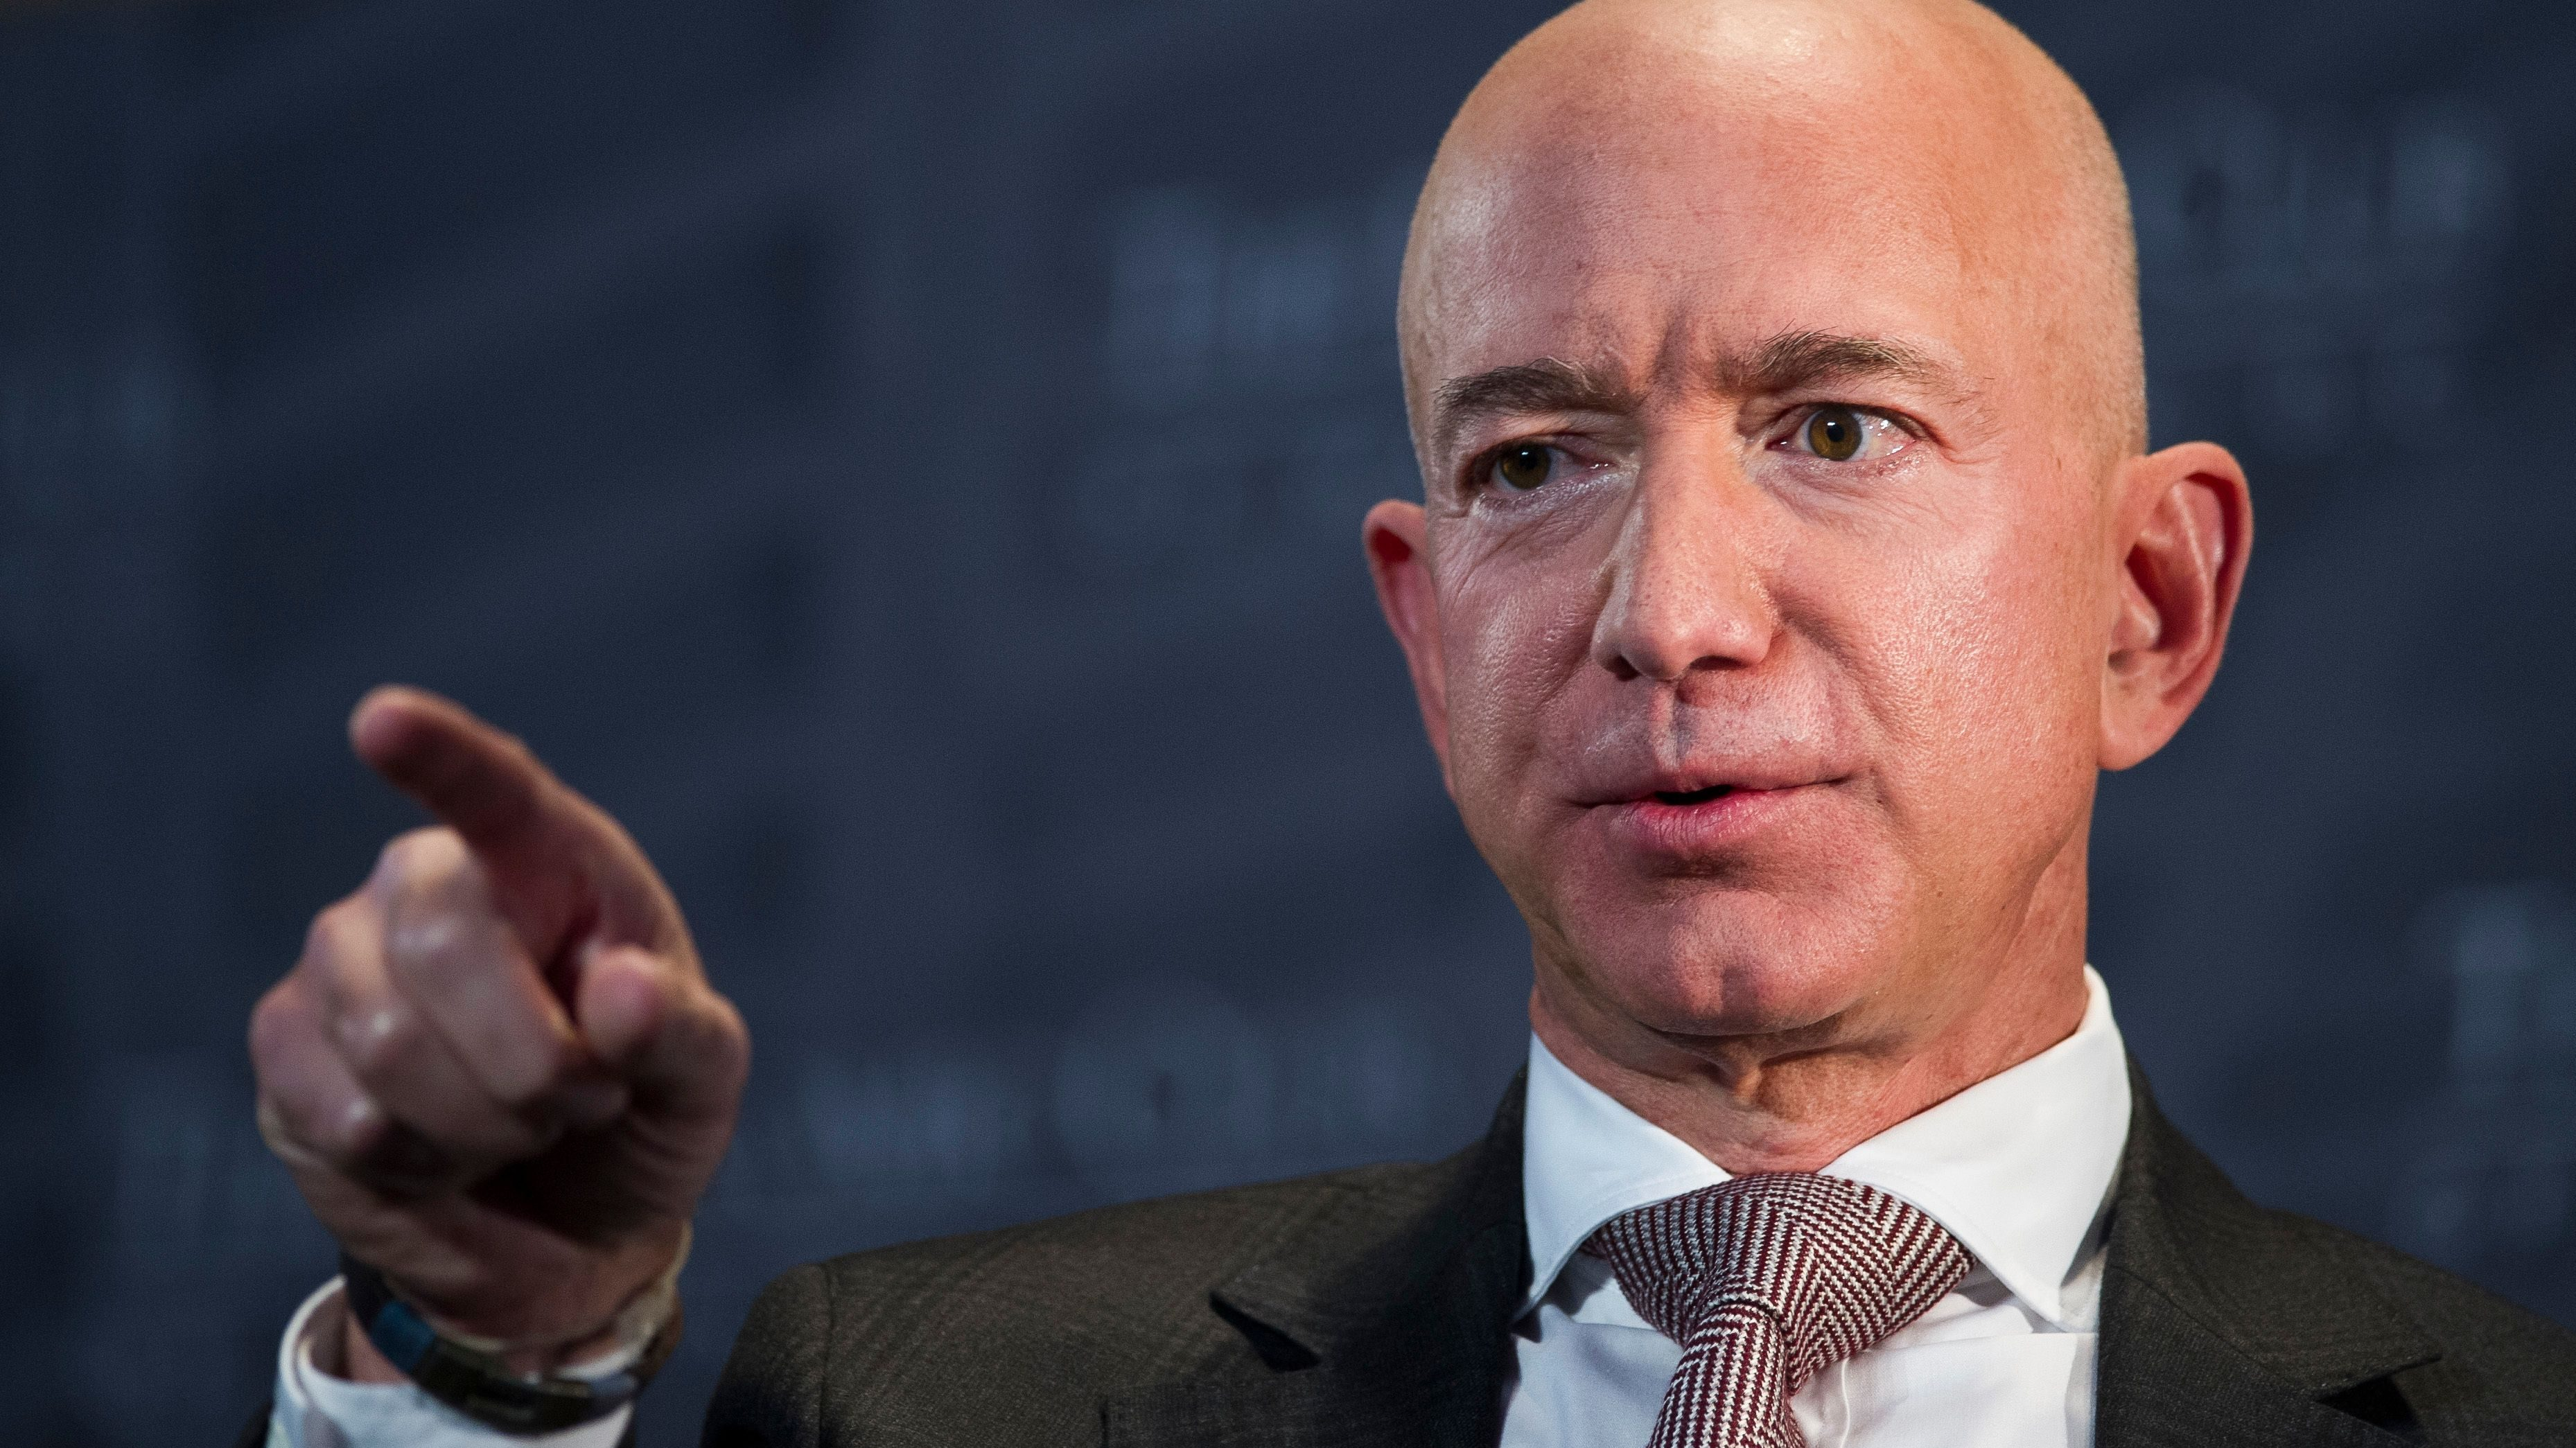 When it makes sense to abandon a vision, according to Jeff Bezos